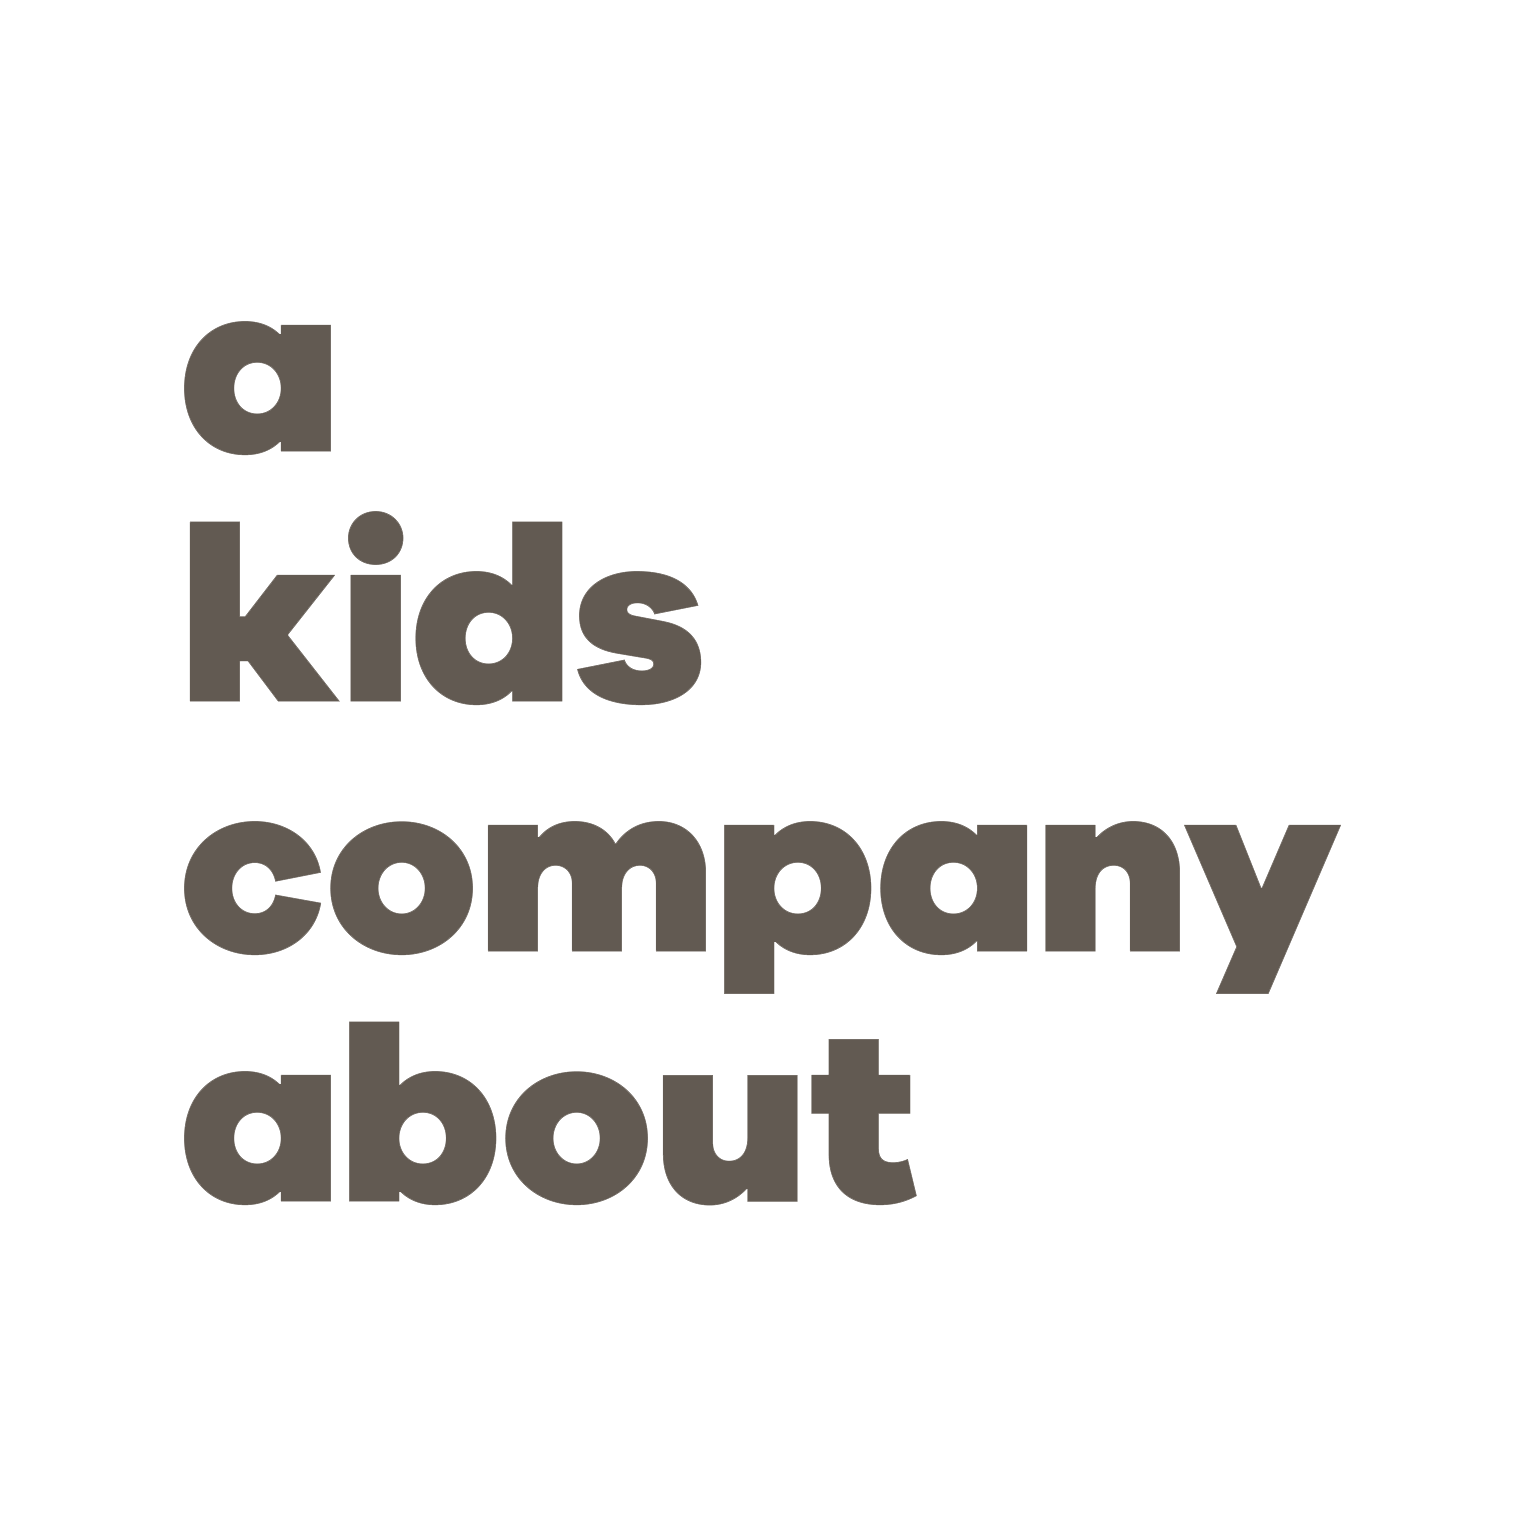 A Kids Podcast About